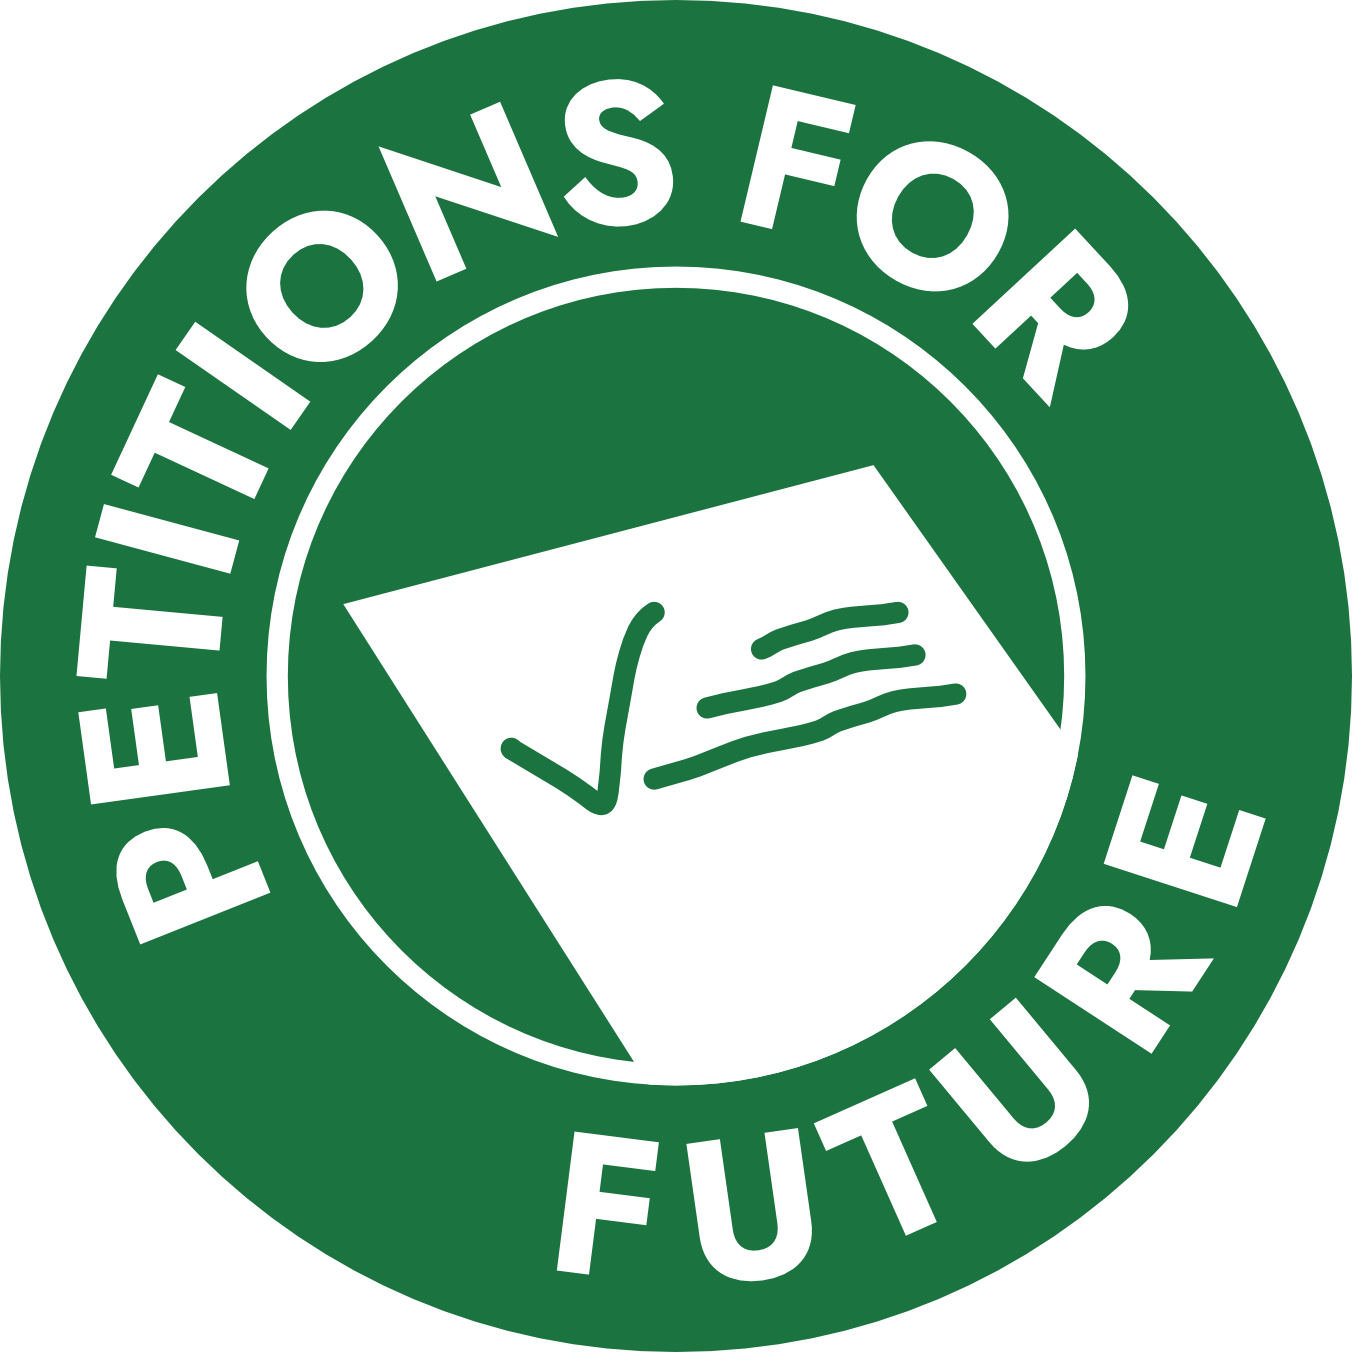 Petitions for Future